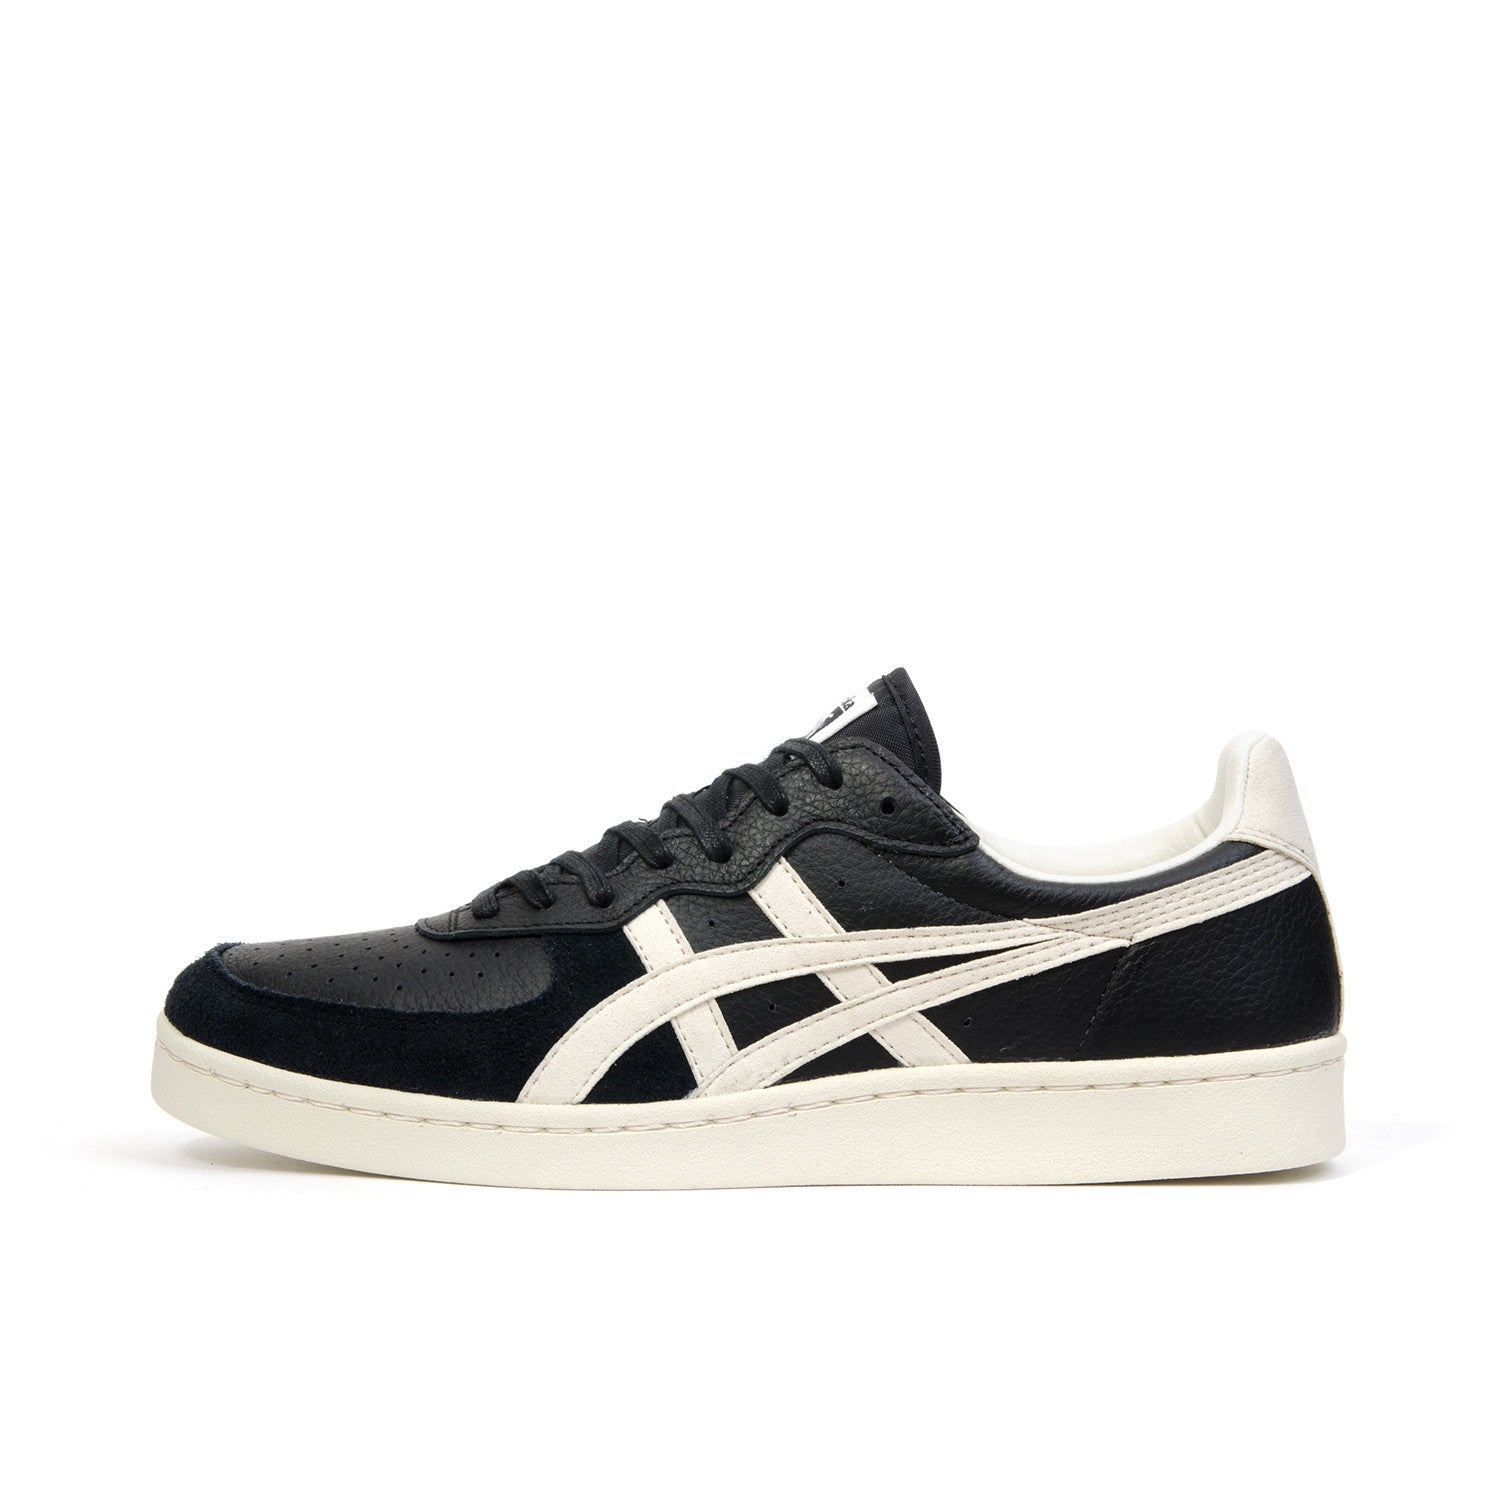 Onitsuka Tiger GSM Black/White